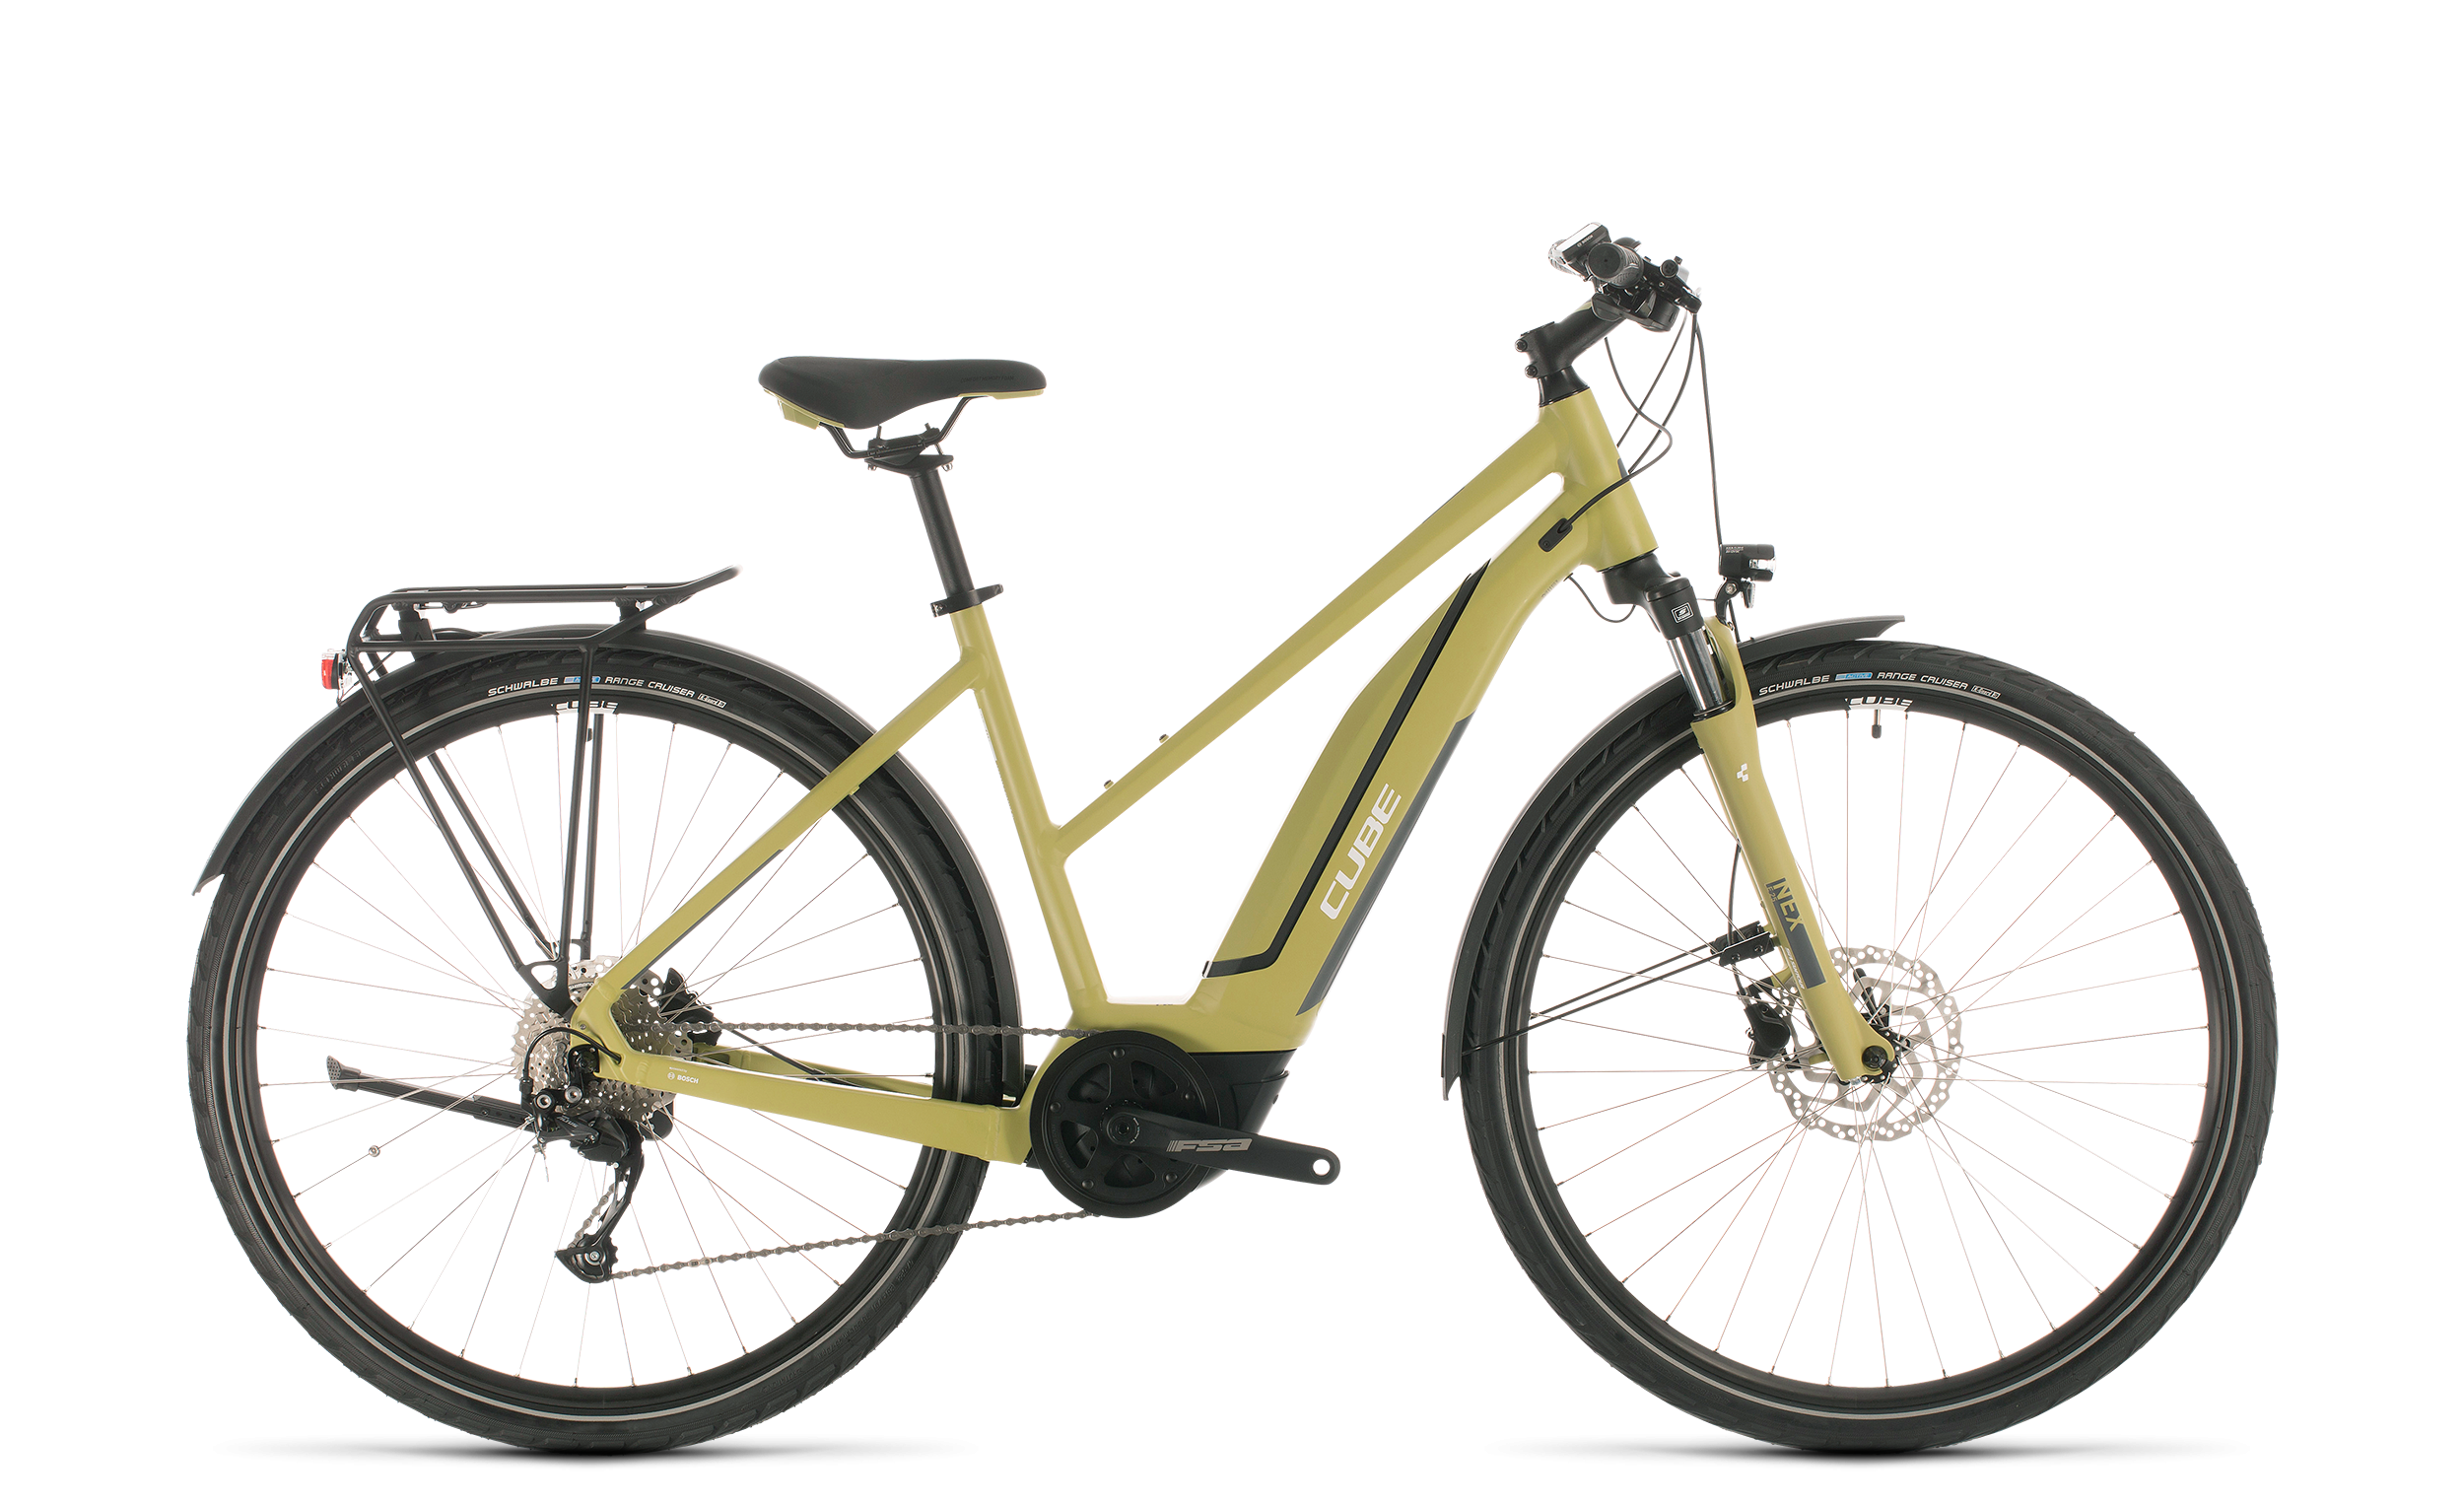 https://w8w5m3f8.stackpathcdn.com/17683/vtc-electrique-cube-touring-hybrid-one-400-ou-500wh-cadre-mixte.jpg